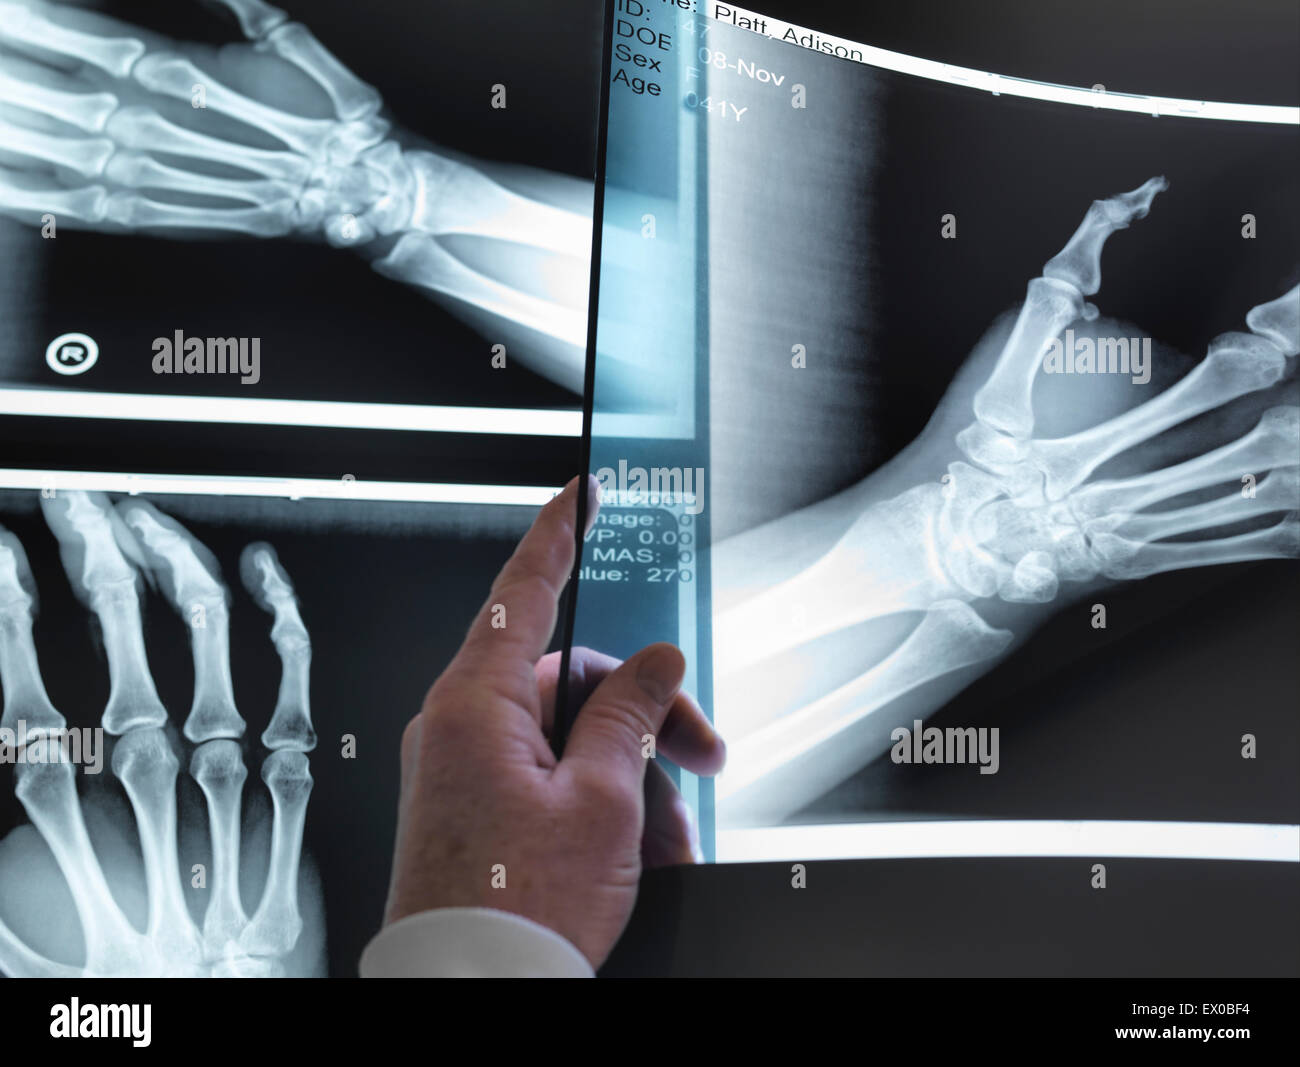 Doctors hand holding up hand xray in hospital - Stock Image